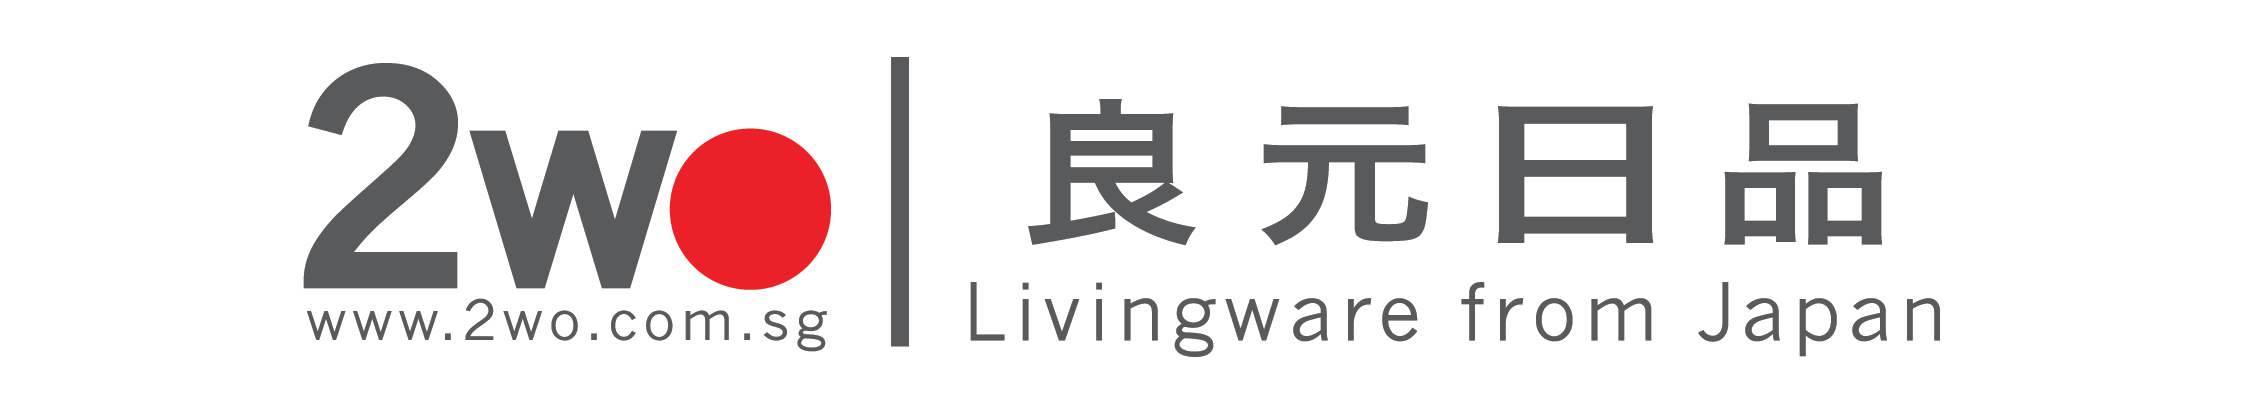 2wo Livingware Products